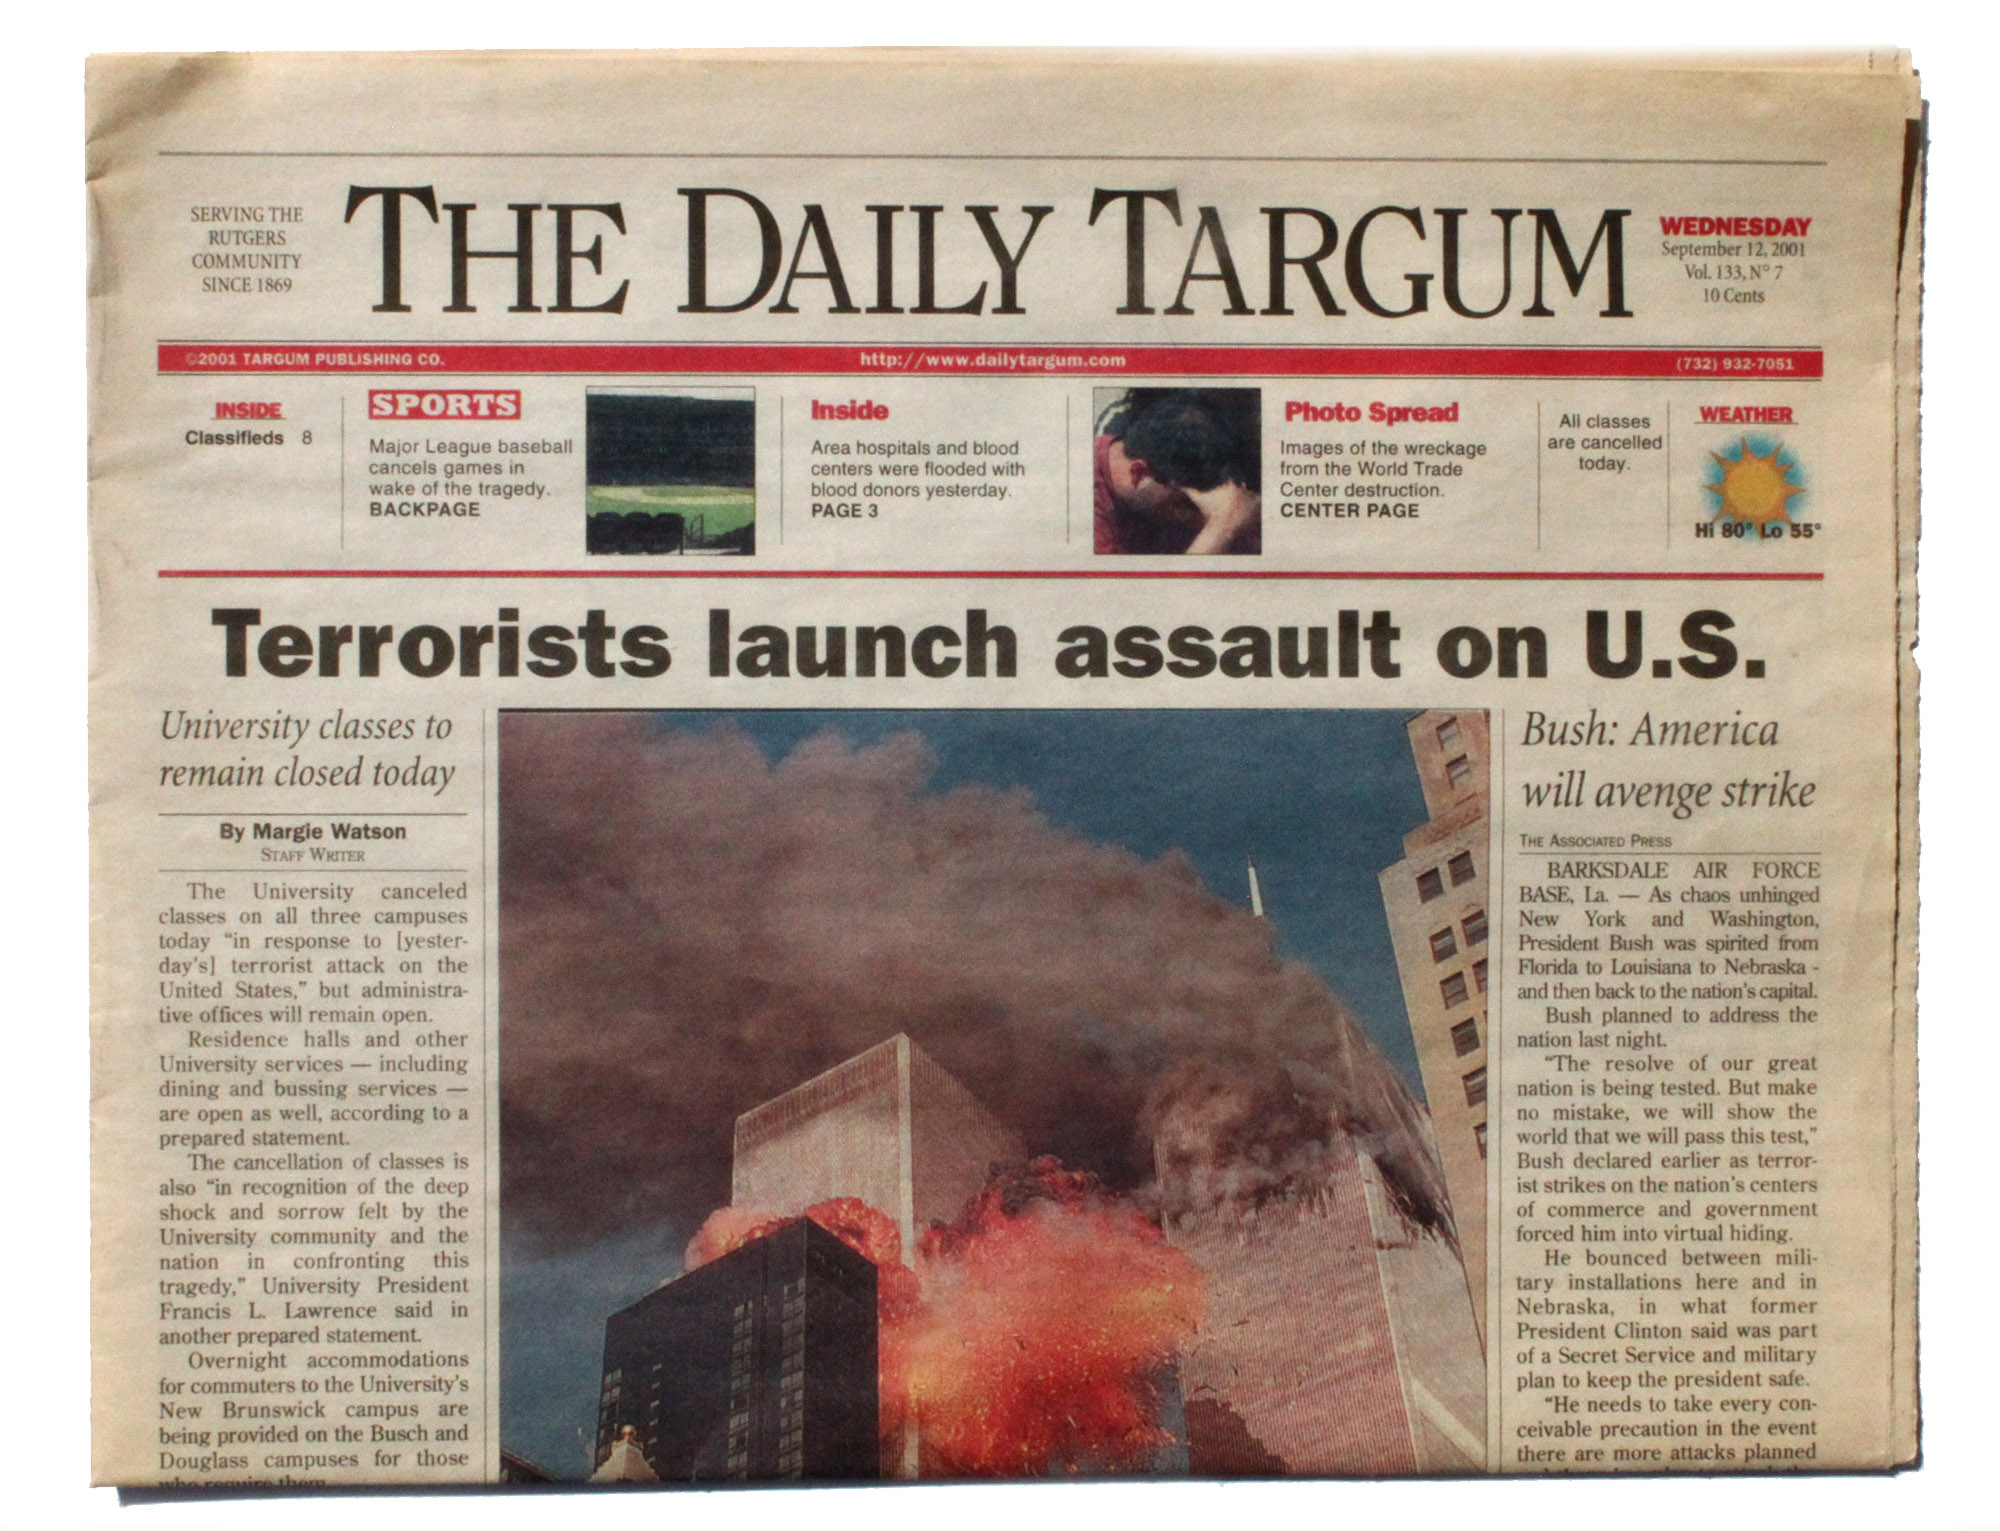 September 11th edition of the Daily Targum, Rutgers